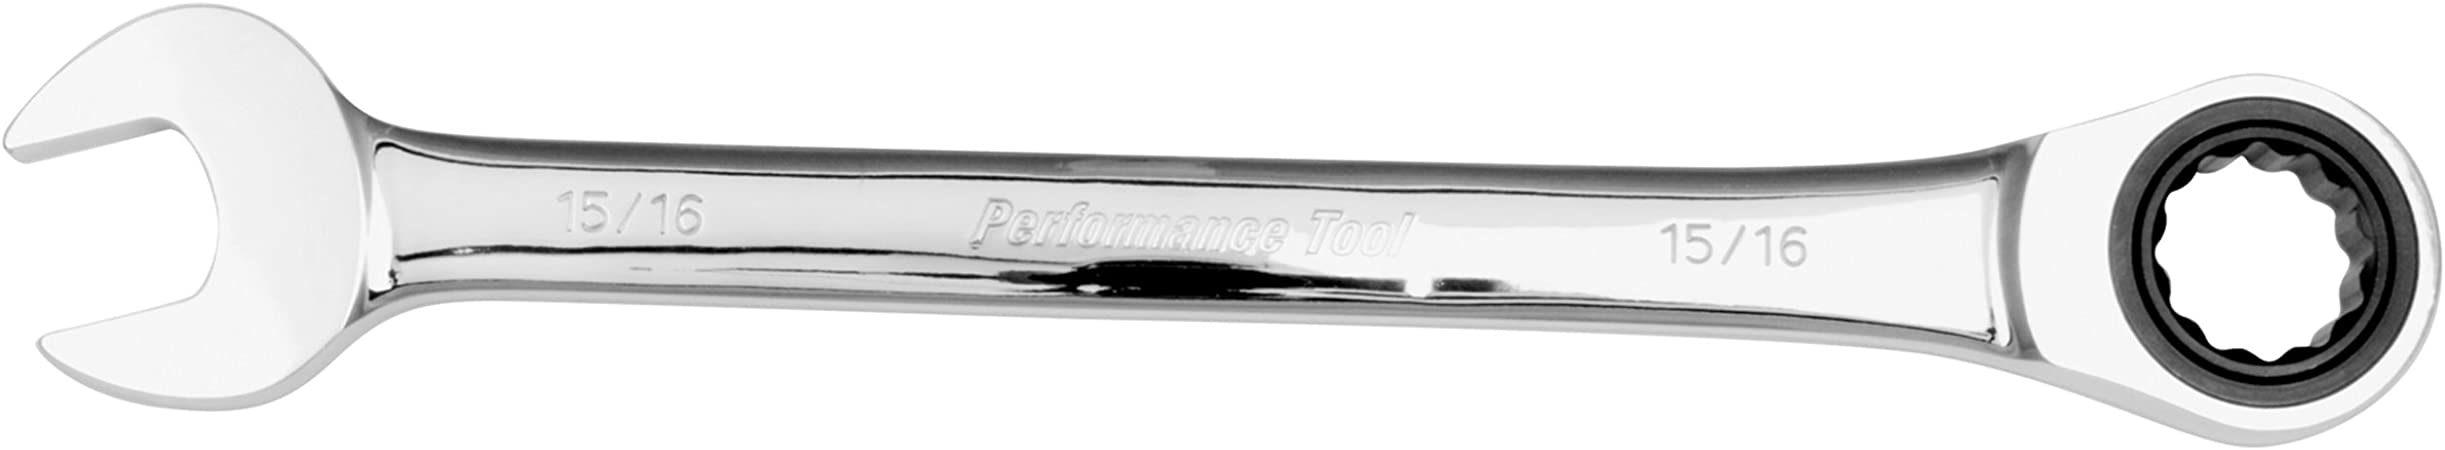 Performance Tool 15//16 Ratcheting Wrench W30261 Pro SAE Ratcheting Wrenches Hand Tools